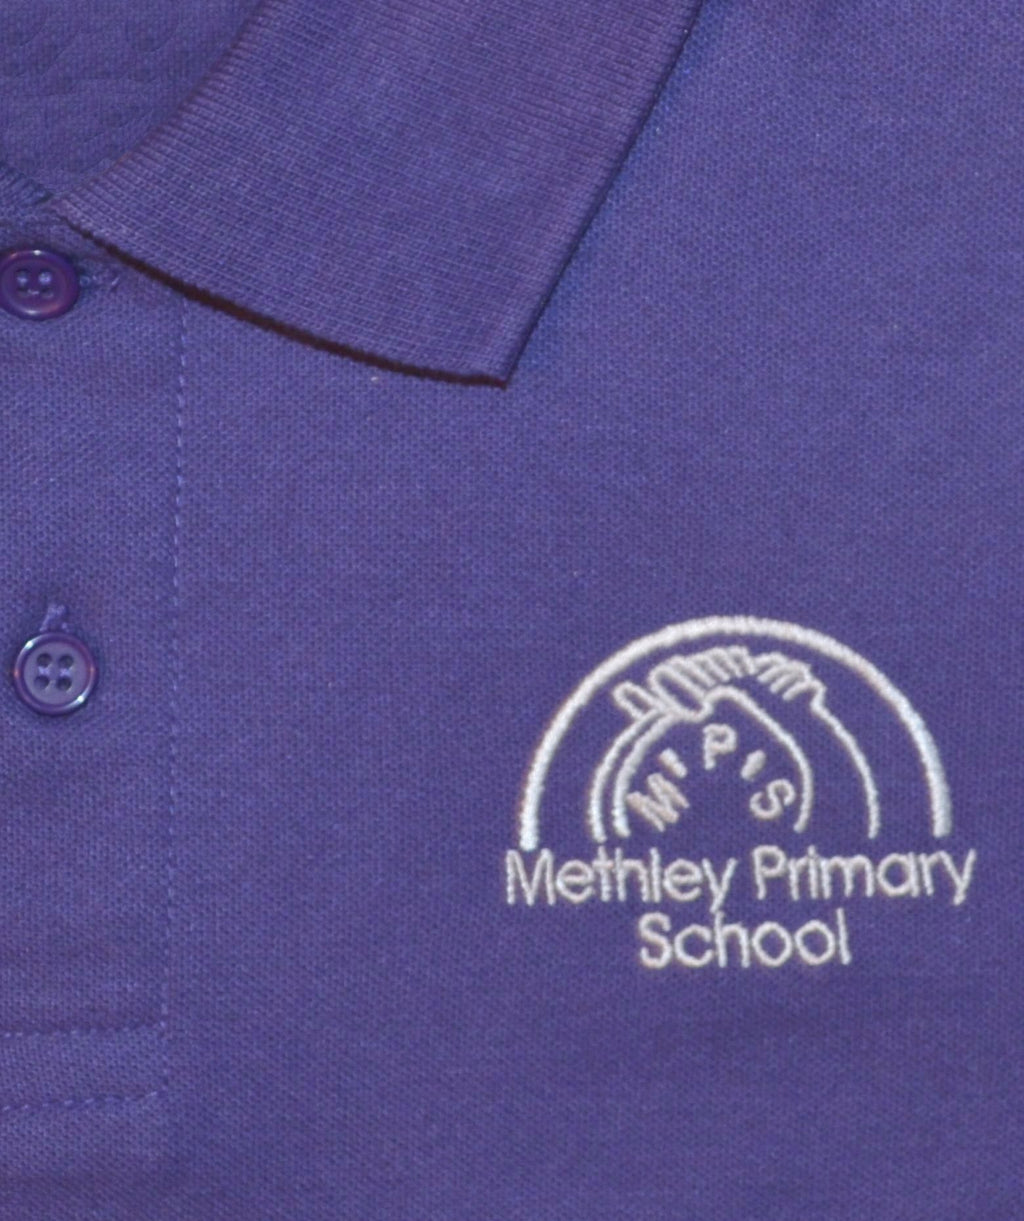 Methley Primary School Uniform Bundle 1